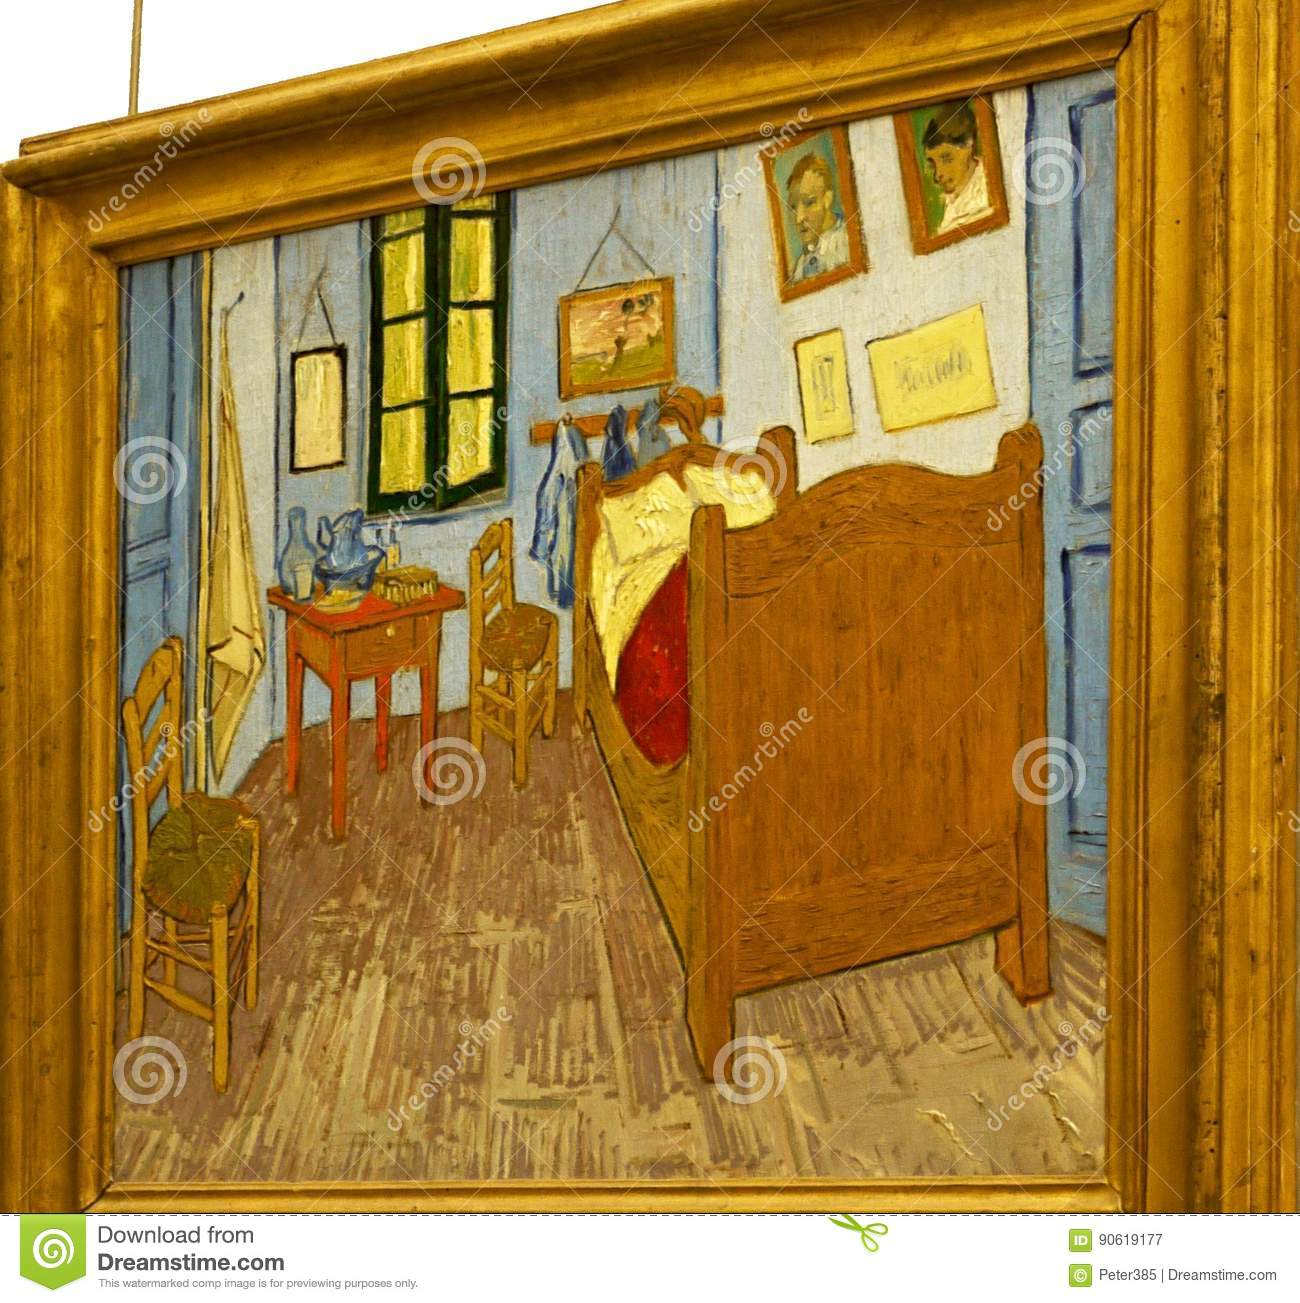 https://thumbs.dreamstime.com/z/slaapkamer-arles-90619177.jpg